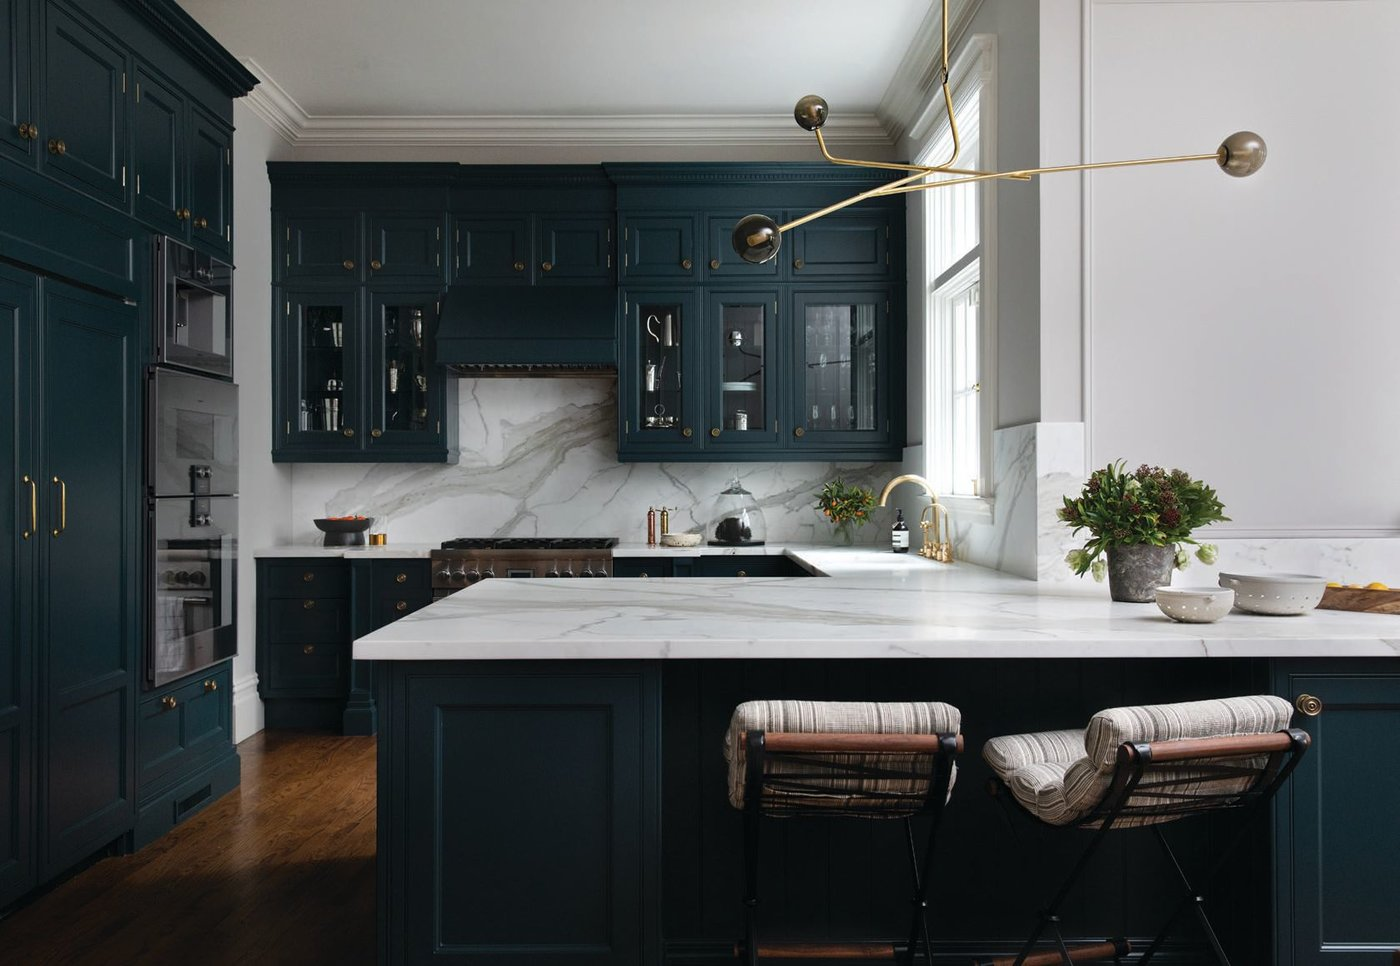 A chandelier from De La Espada presides over the kitchen, which features Thomas Hayes counter stools, Calacata Oro honed marble and a Waterworks faucet. Benjamin Moore's Narragansett Green paint coats the cabinetry PHOTOGRAPHED BY BESS FRIDAY